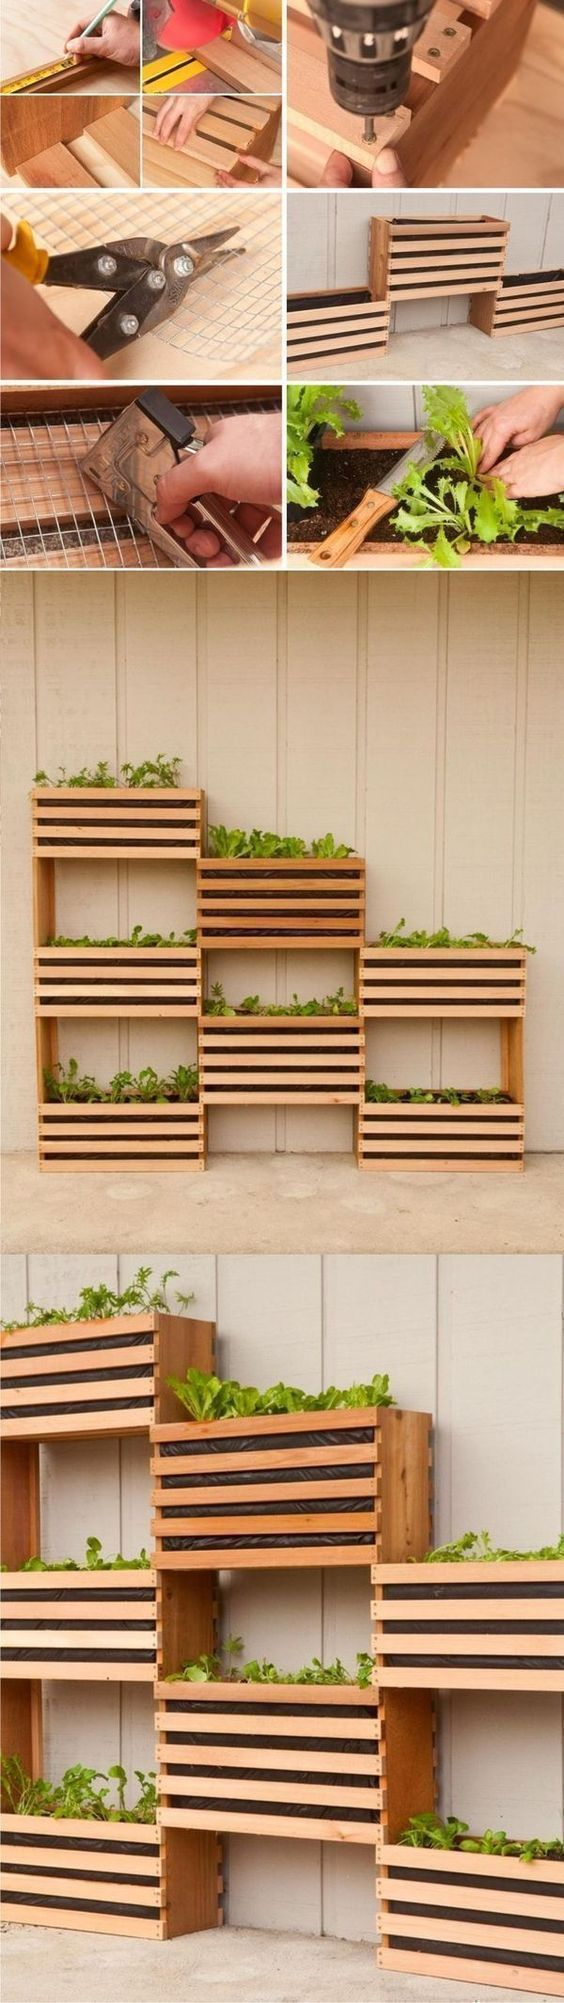 Excellent idea for indoor garden. Space-Saving Vertical Vegetable Garden #gardening on a budget #garden #budget #gardenforbeginnersonabudget #vegetablegardeningideasonabudget #indoorvegetablegardeningvertical #verticalgardens #indoorgardening #indoorvegetablegardeningideas #gardeningindoor